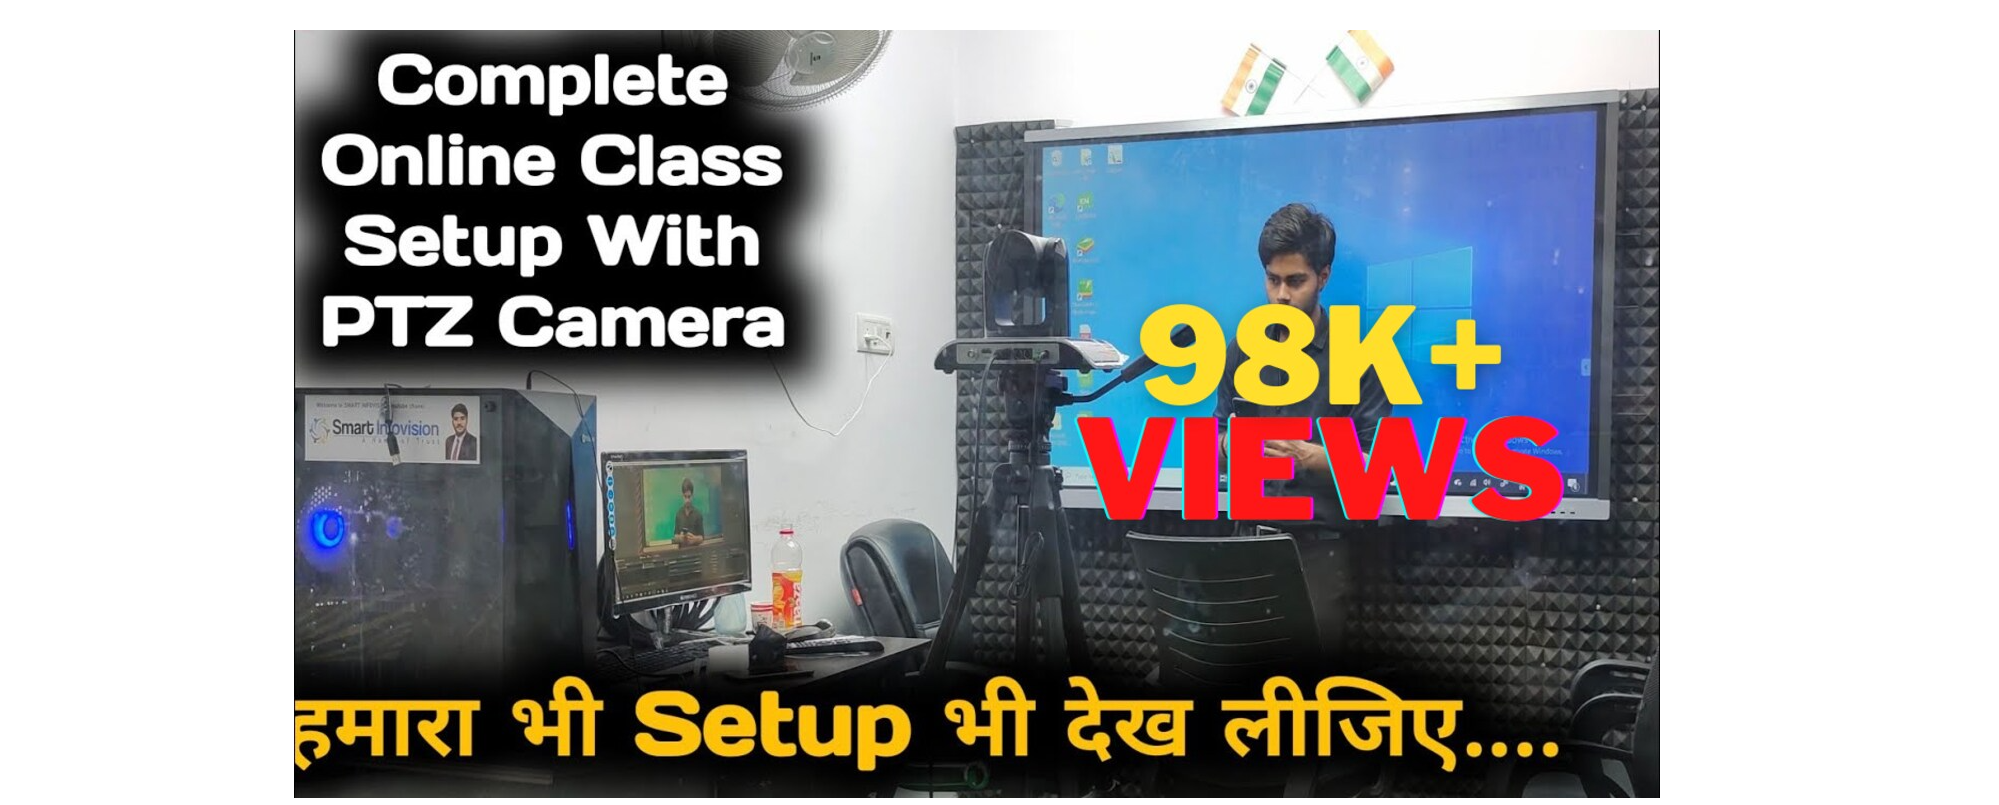 how to take online classes lecture recording software smart infovision online class setup how to take online class setup maxhub interactive flat panel price maxhub interactive panel india benchmark ptz camera low cost online class setup best camera for online teaching best smart board for teaching best online class setup for online class online class equipment for teachers how to teach online maxhube75fa price in india maxhube75fa price online classes